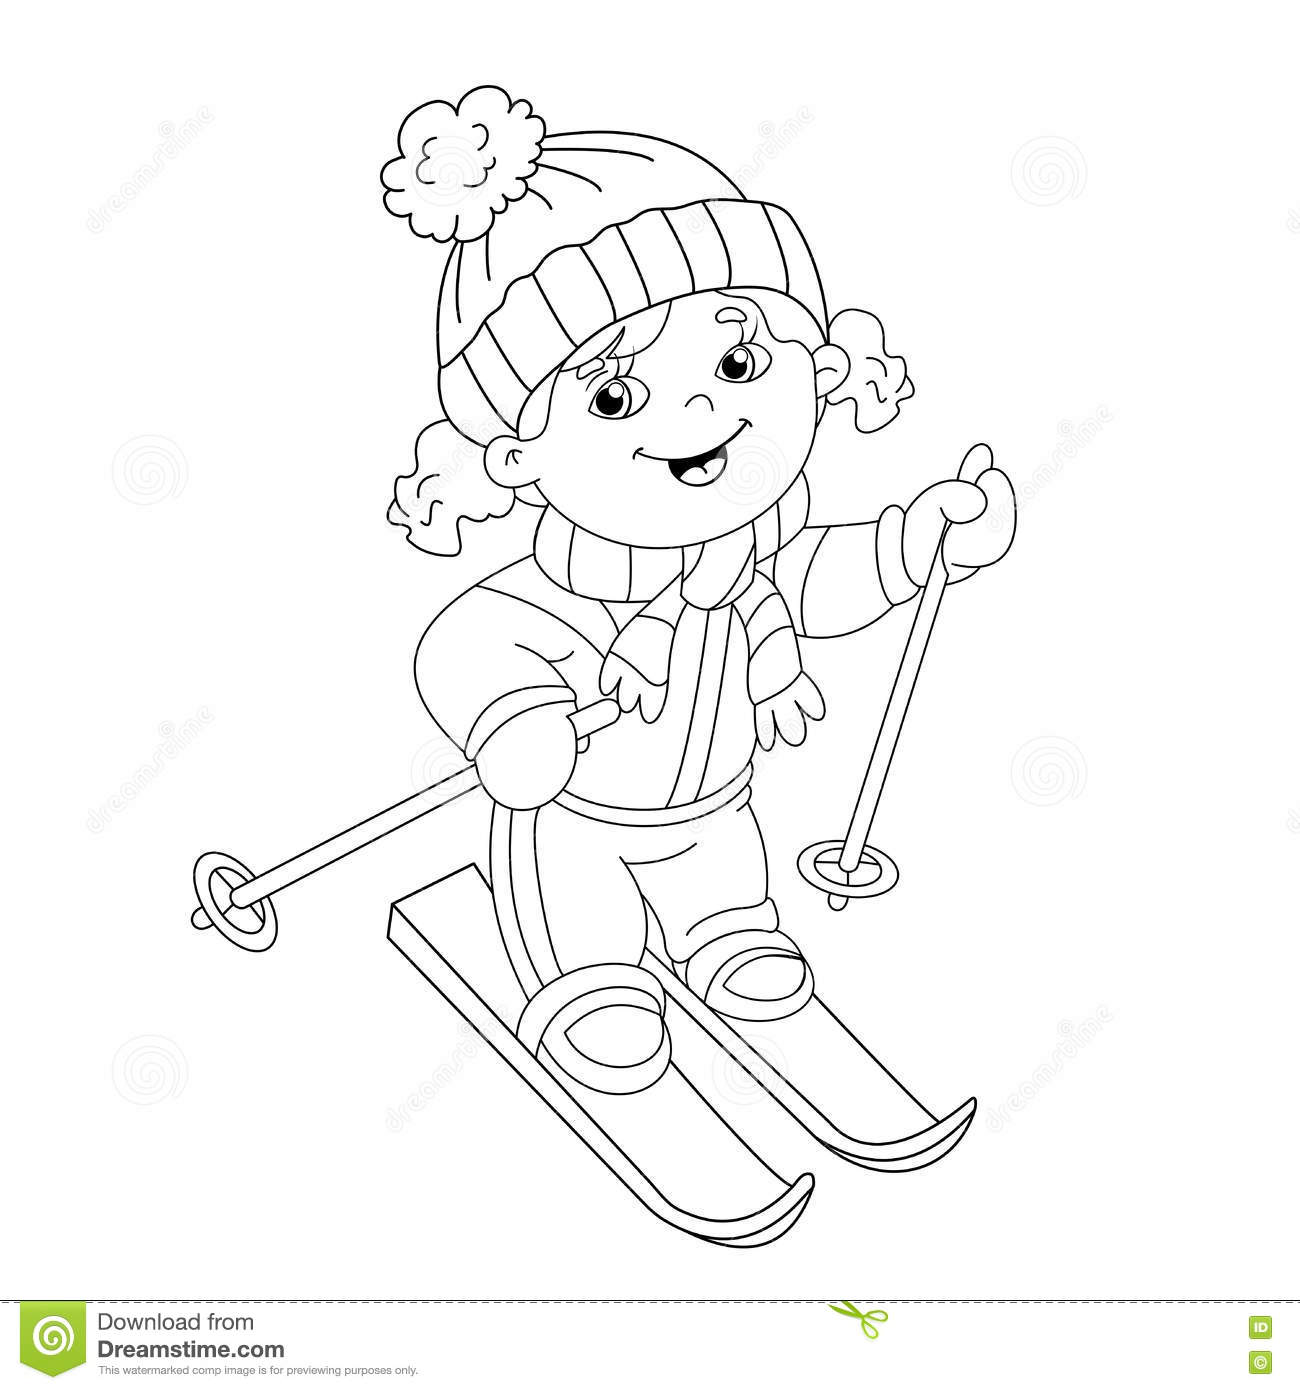 coloring page outline of a cartoon stock vector image 77704719